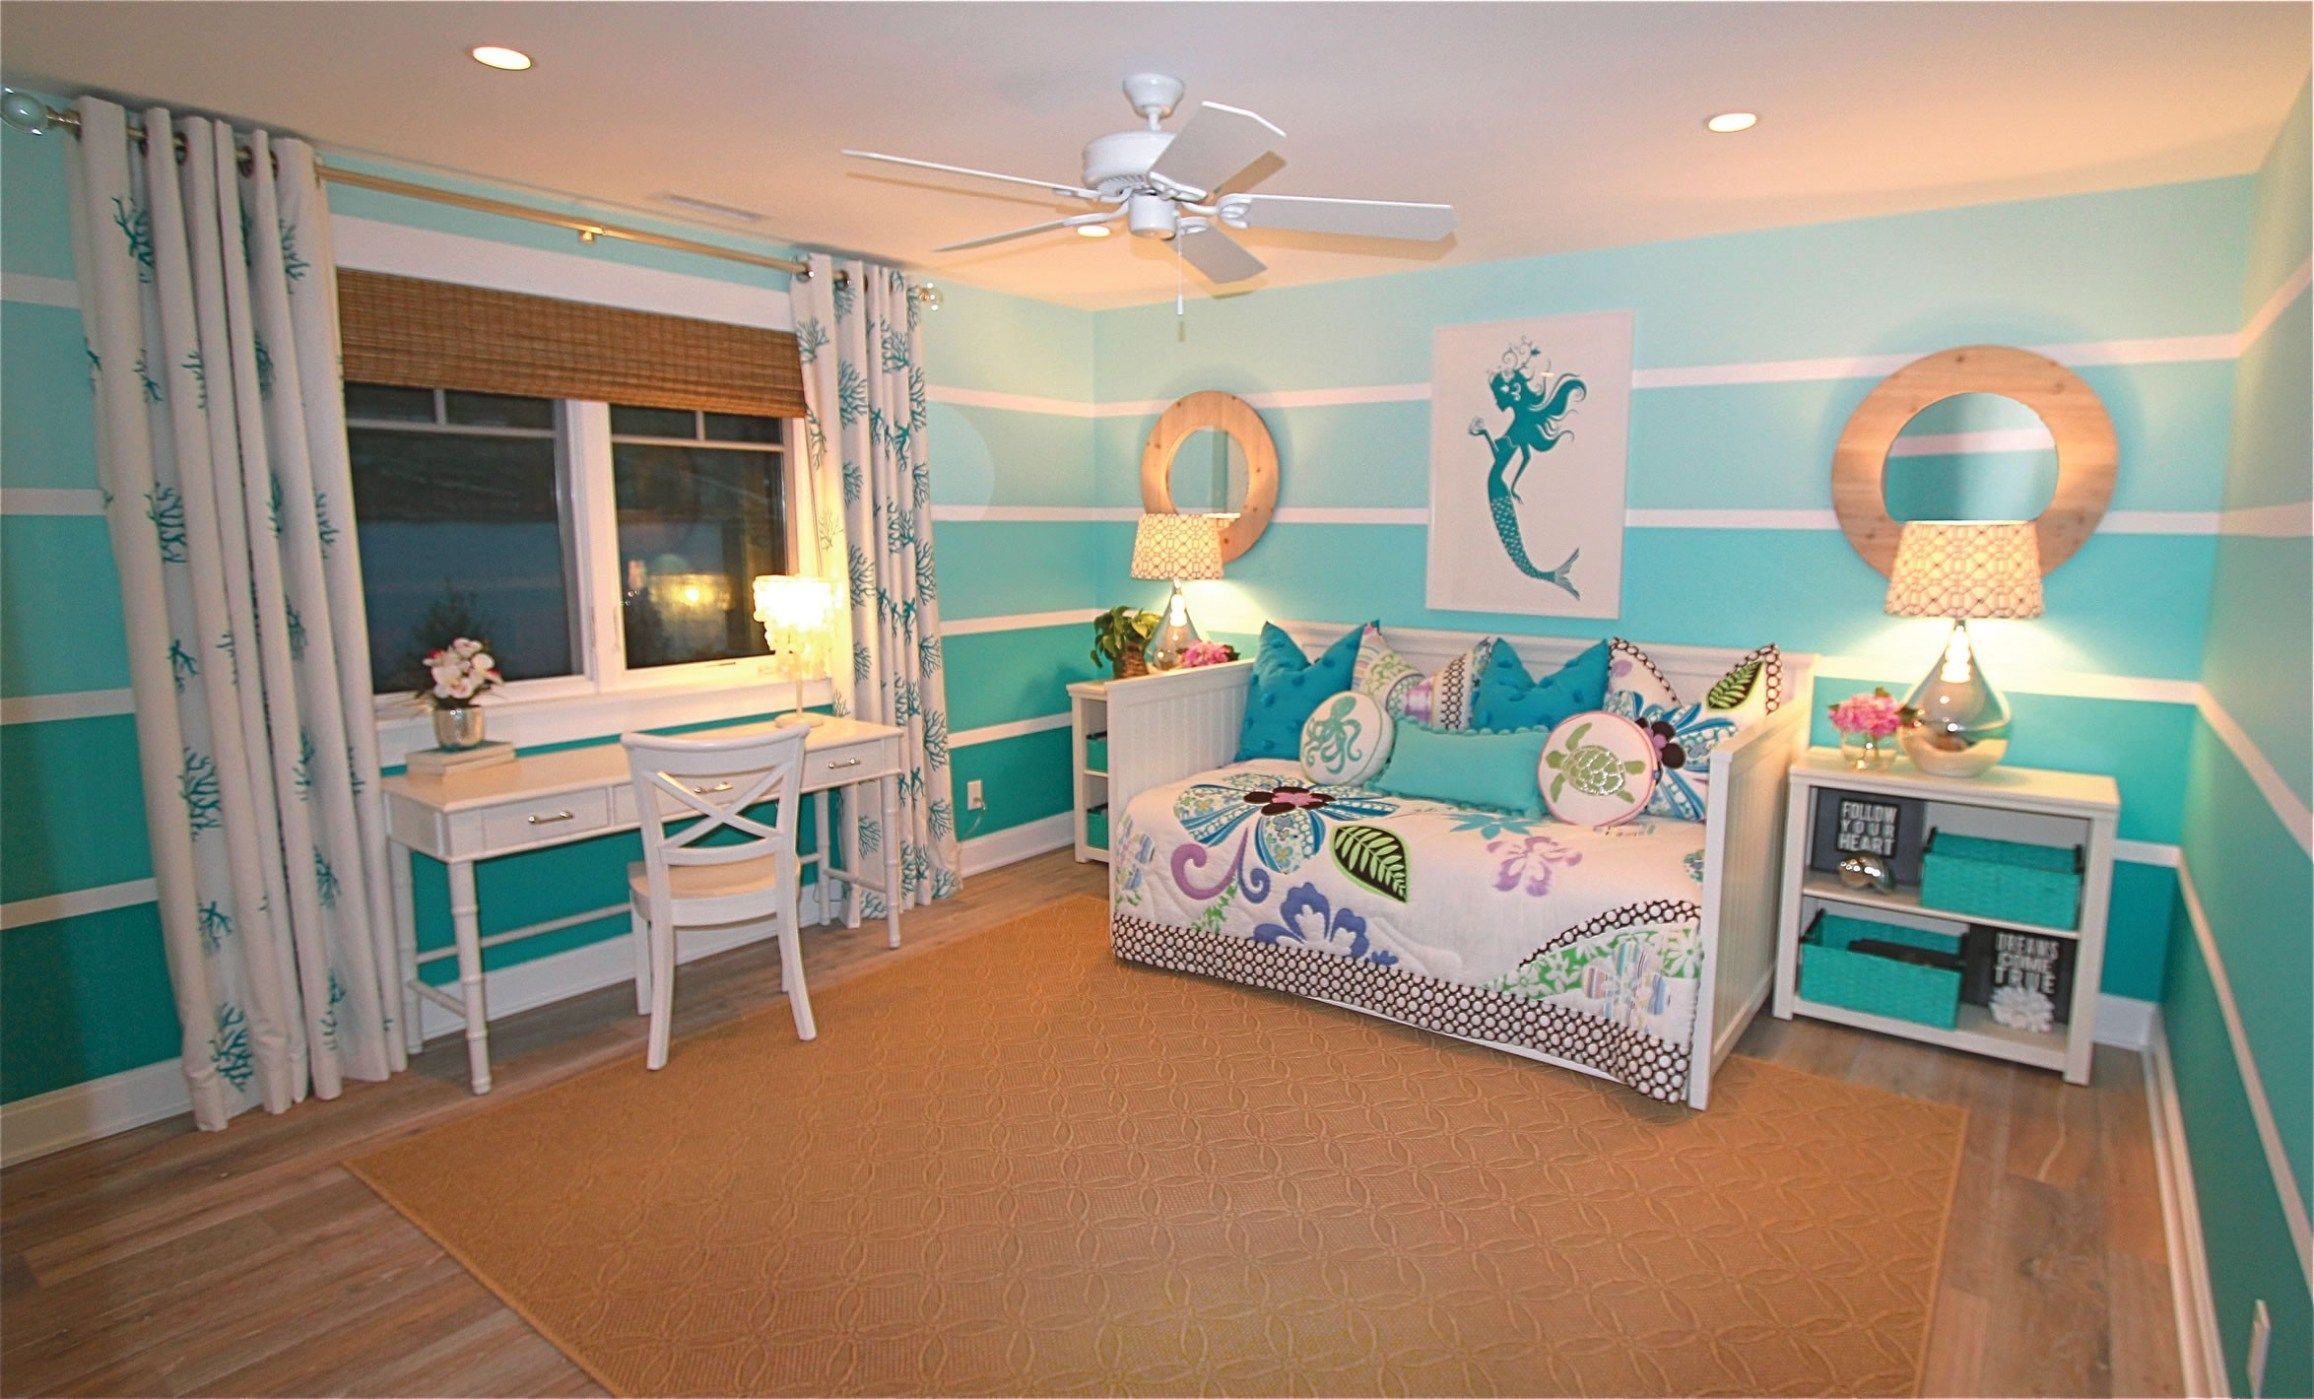 Awesome Ocean Decor Bedroom Ideas images